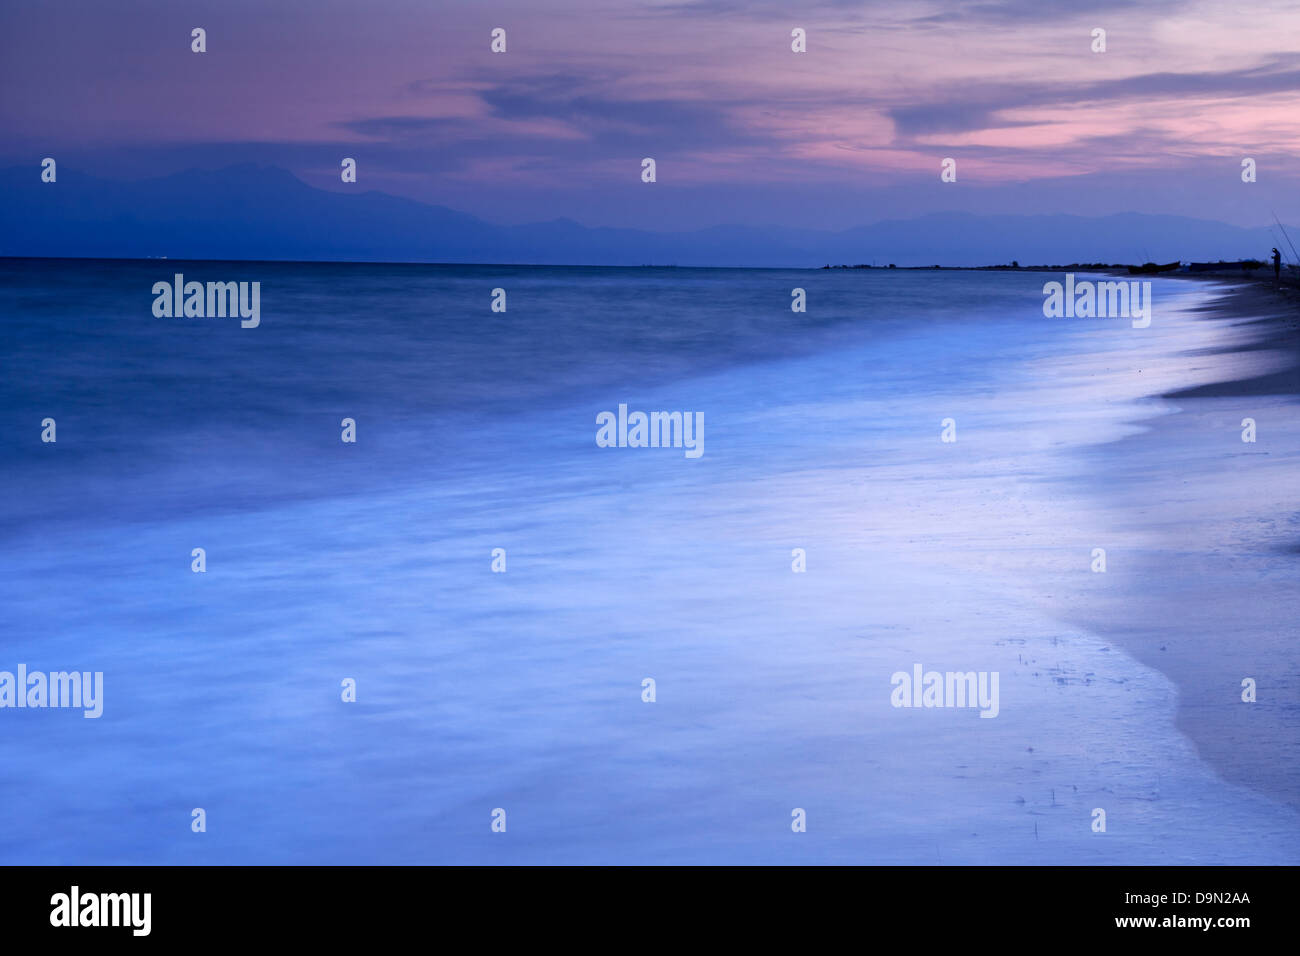 A beautiful afternoon  seascape / landscape with a calm sky , waves , and a fisherman in the distance. - Stock Image